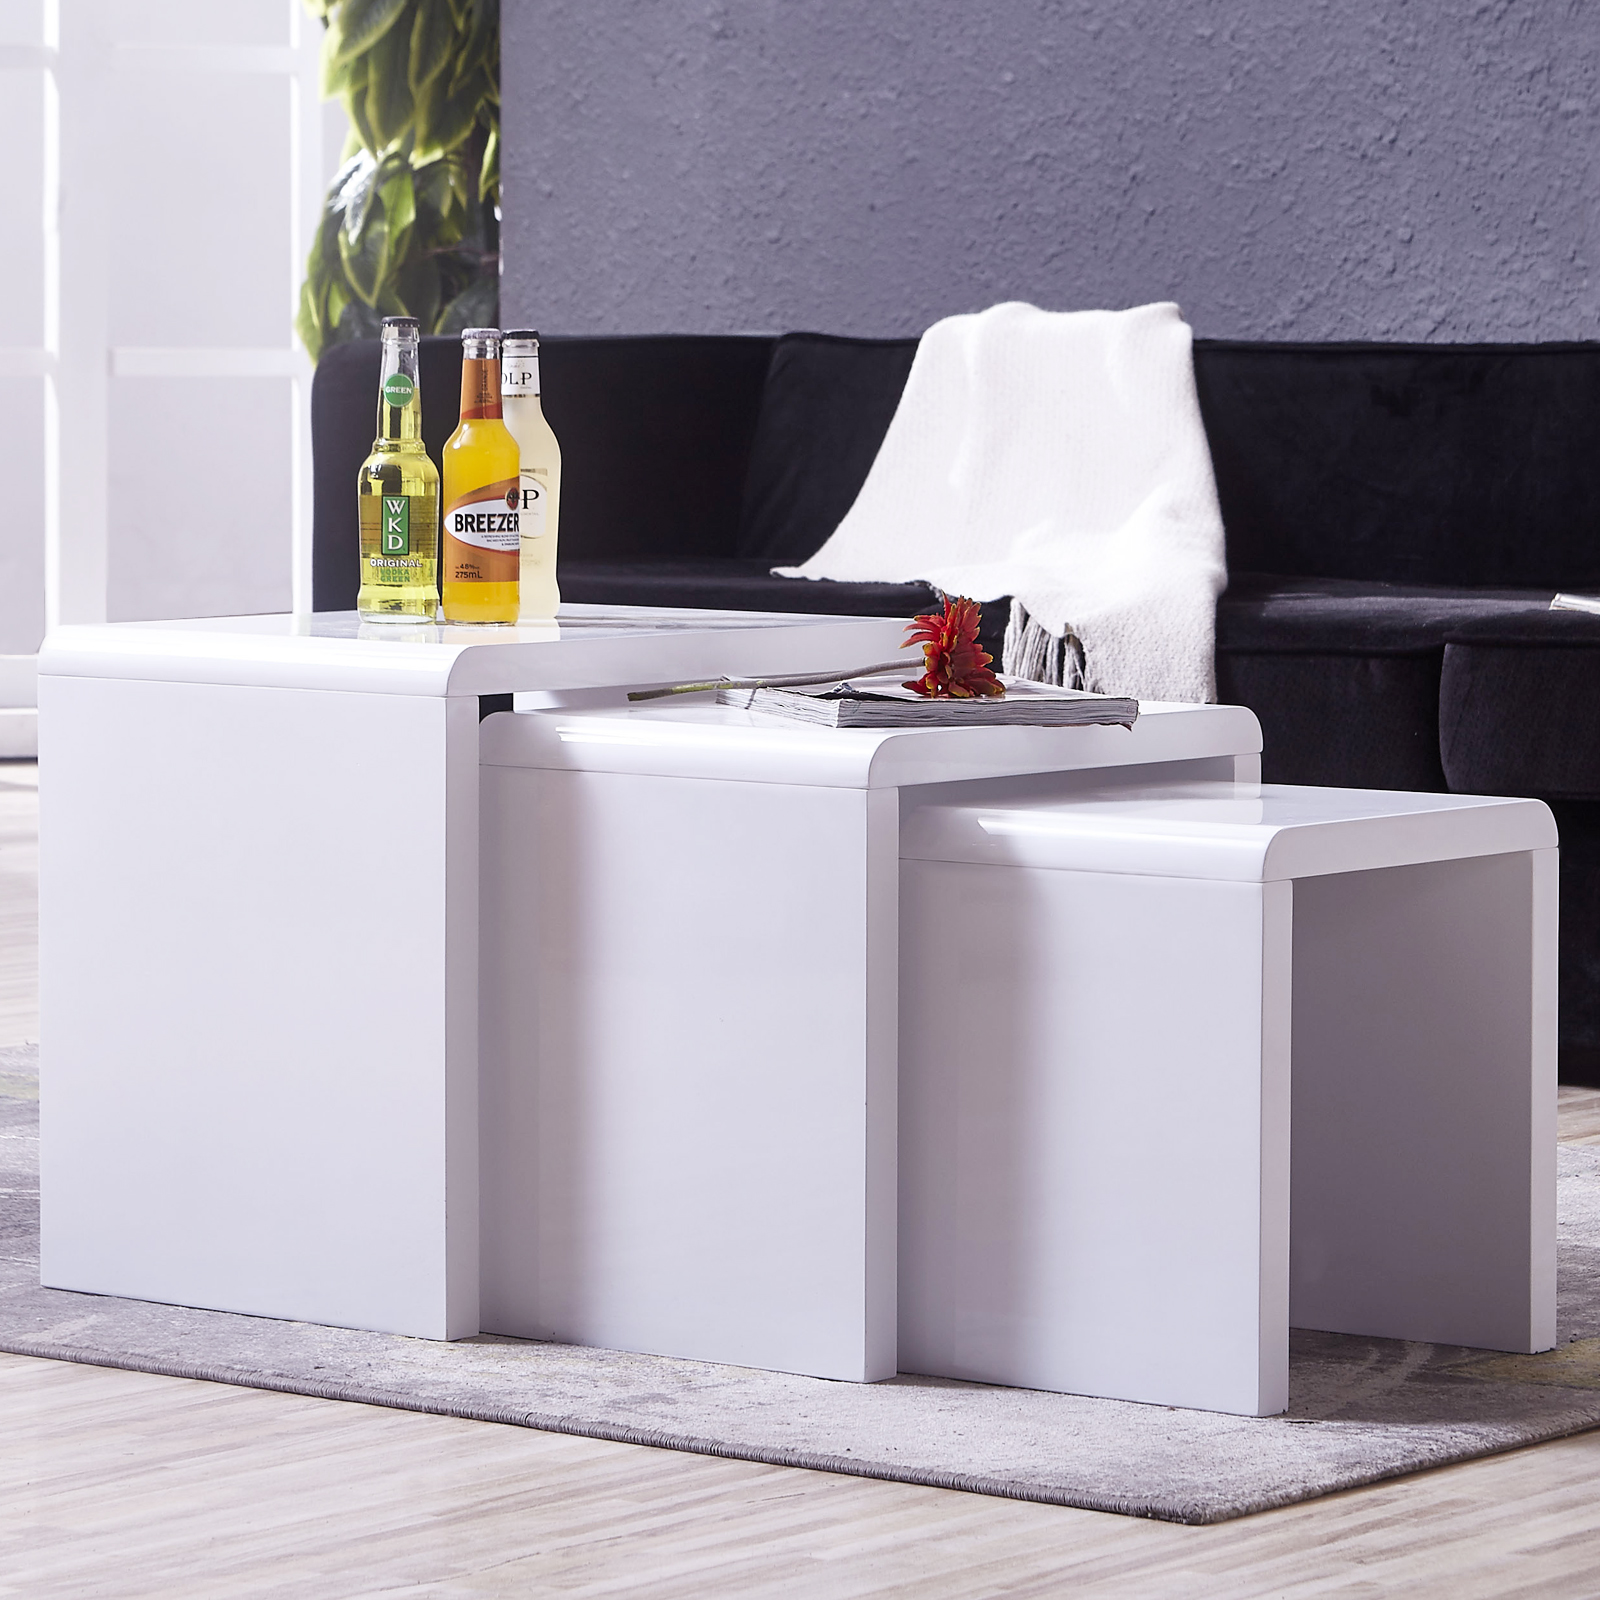 Nest Of 3 High Gloss White Curved Coffee Table Side Tables: High Gloss White Solid Nest Of 3 Coffee Tables MDF